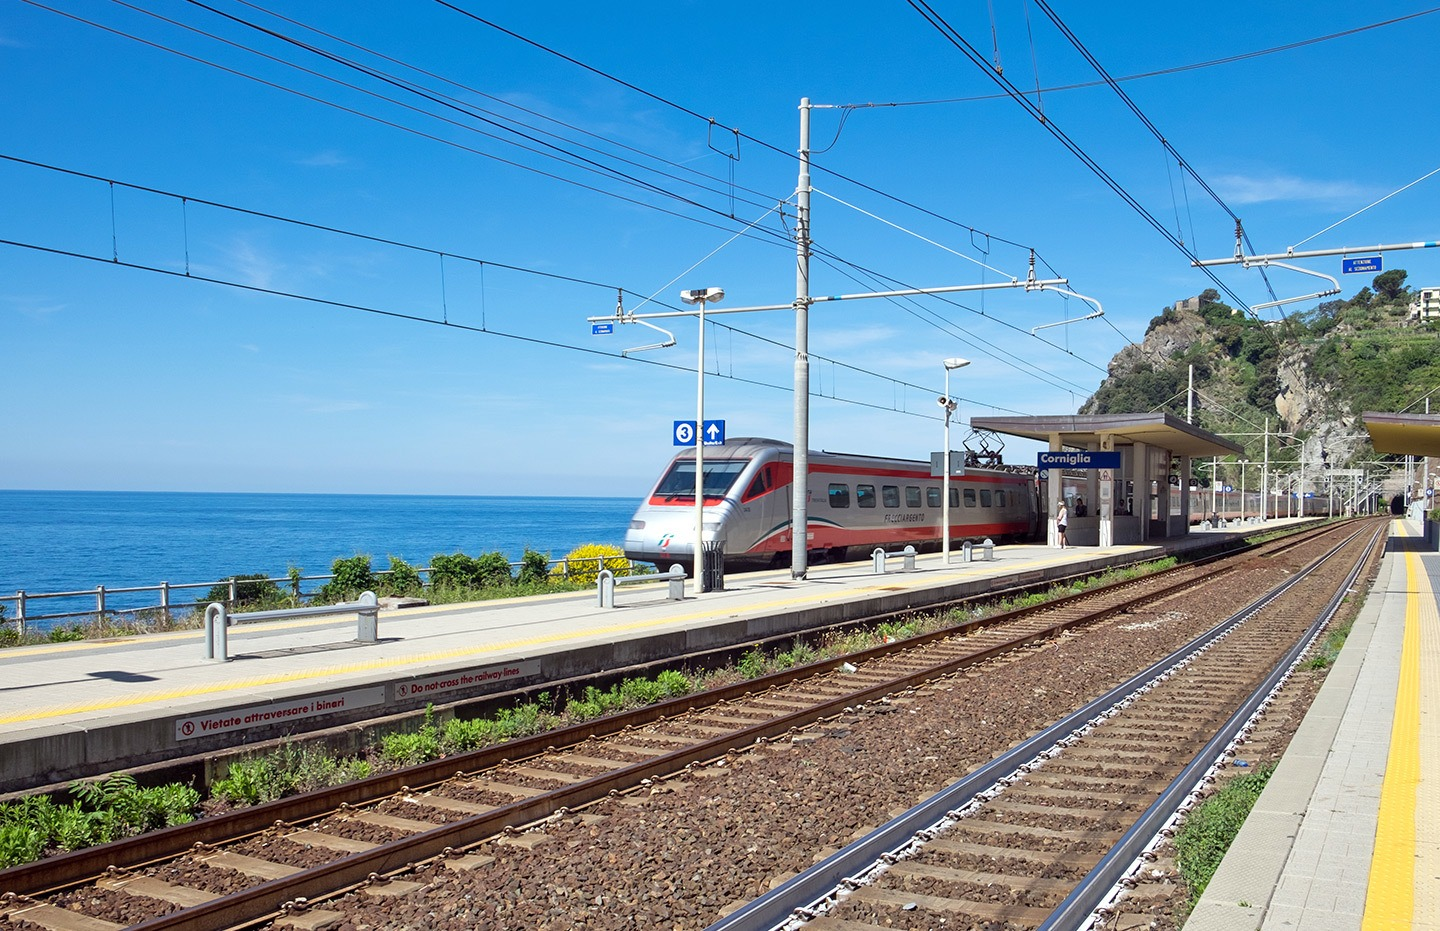 A rail trip on the Cinque Terre's coastal train line